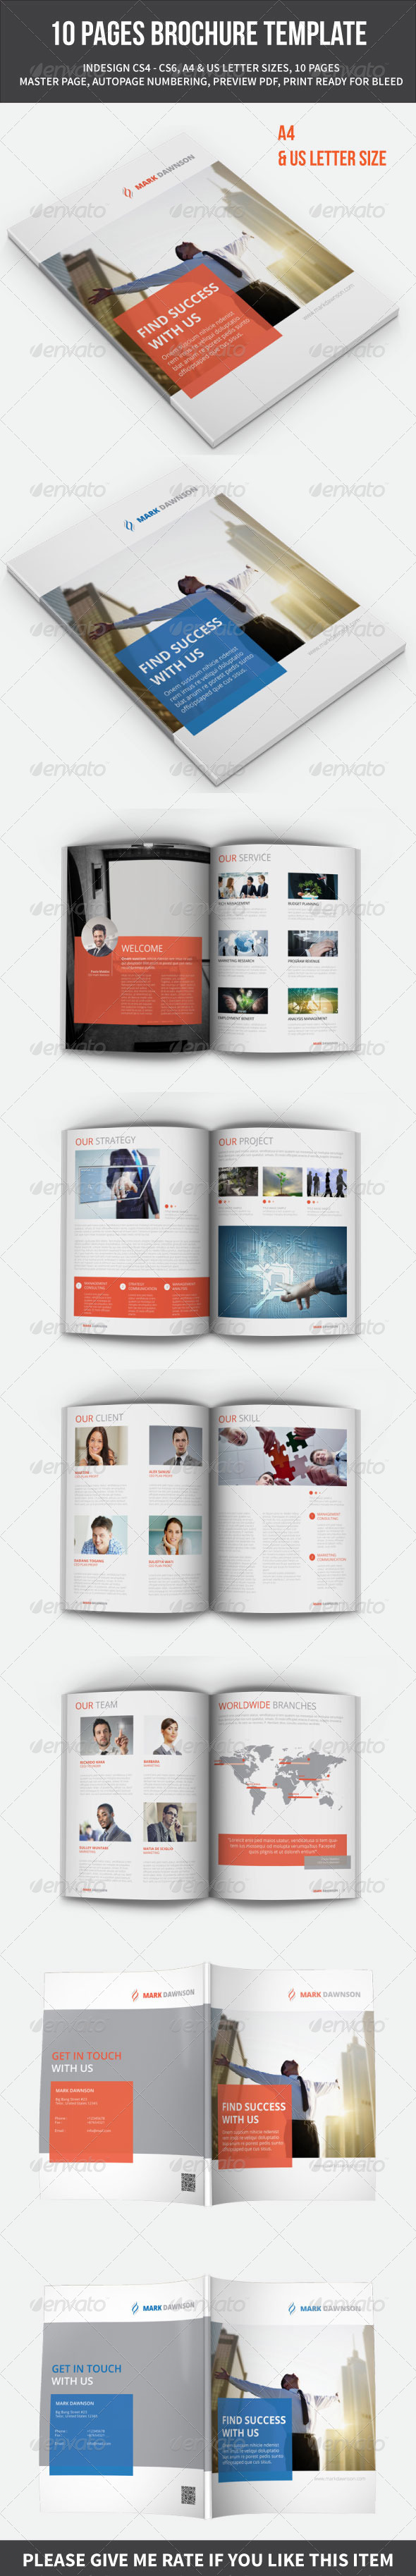 GraphicRiver 10 PAGES BROCHURE TEMPLATE 8739230